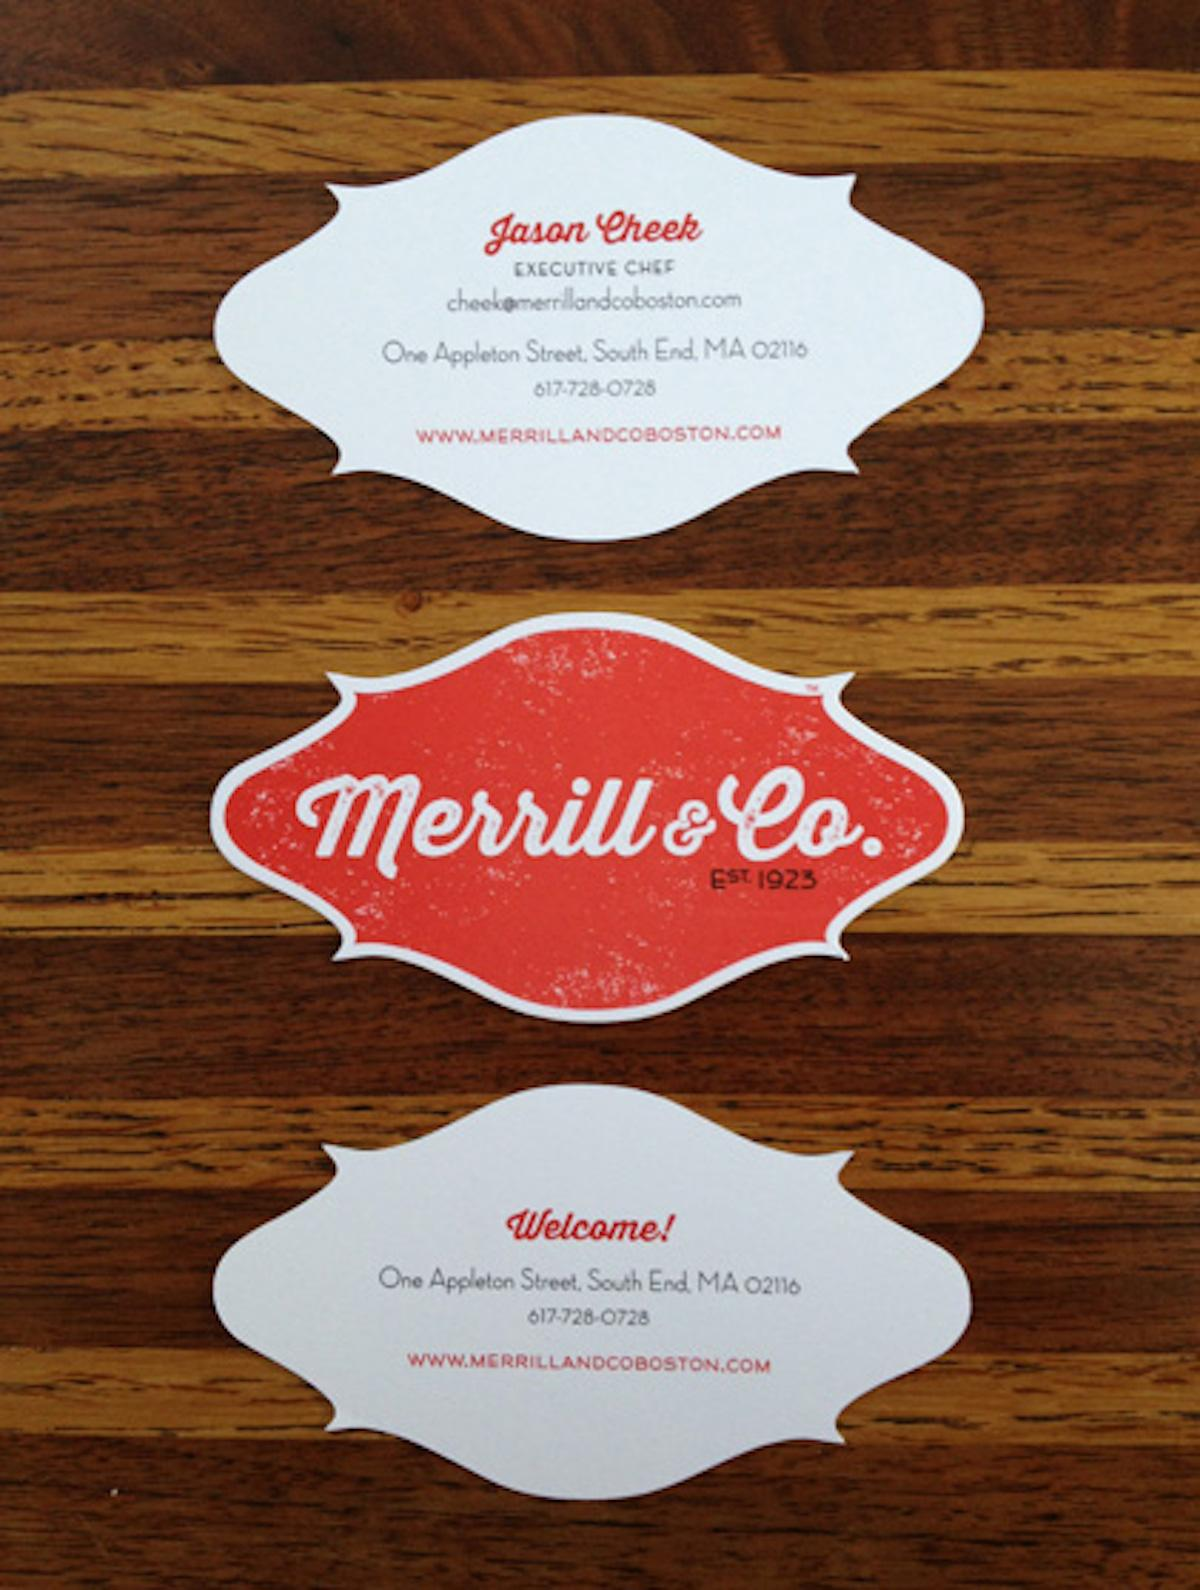 merrill co cards - Merrill Business Cards